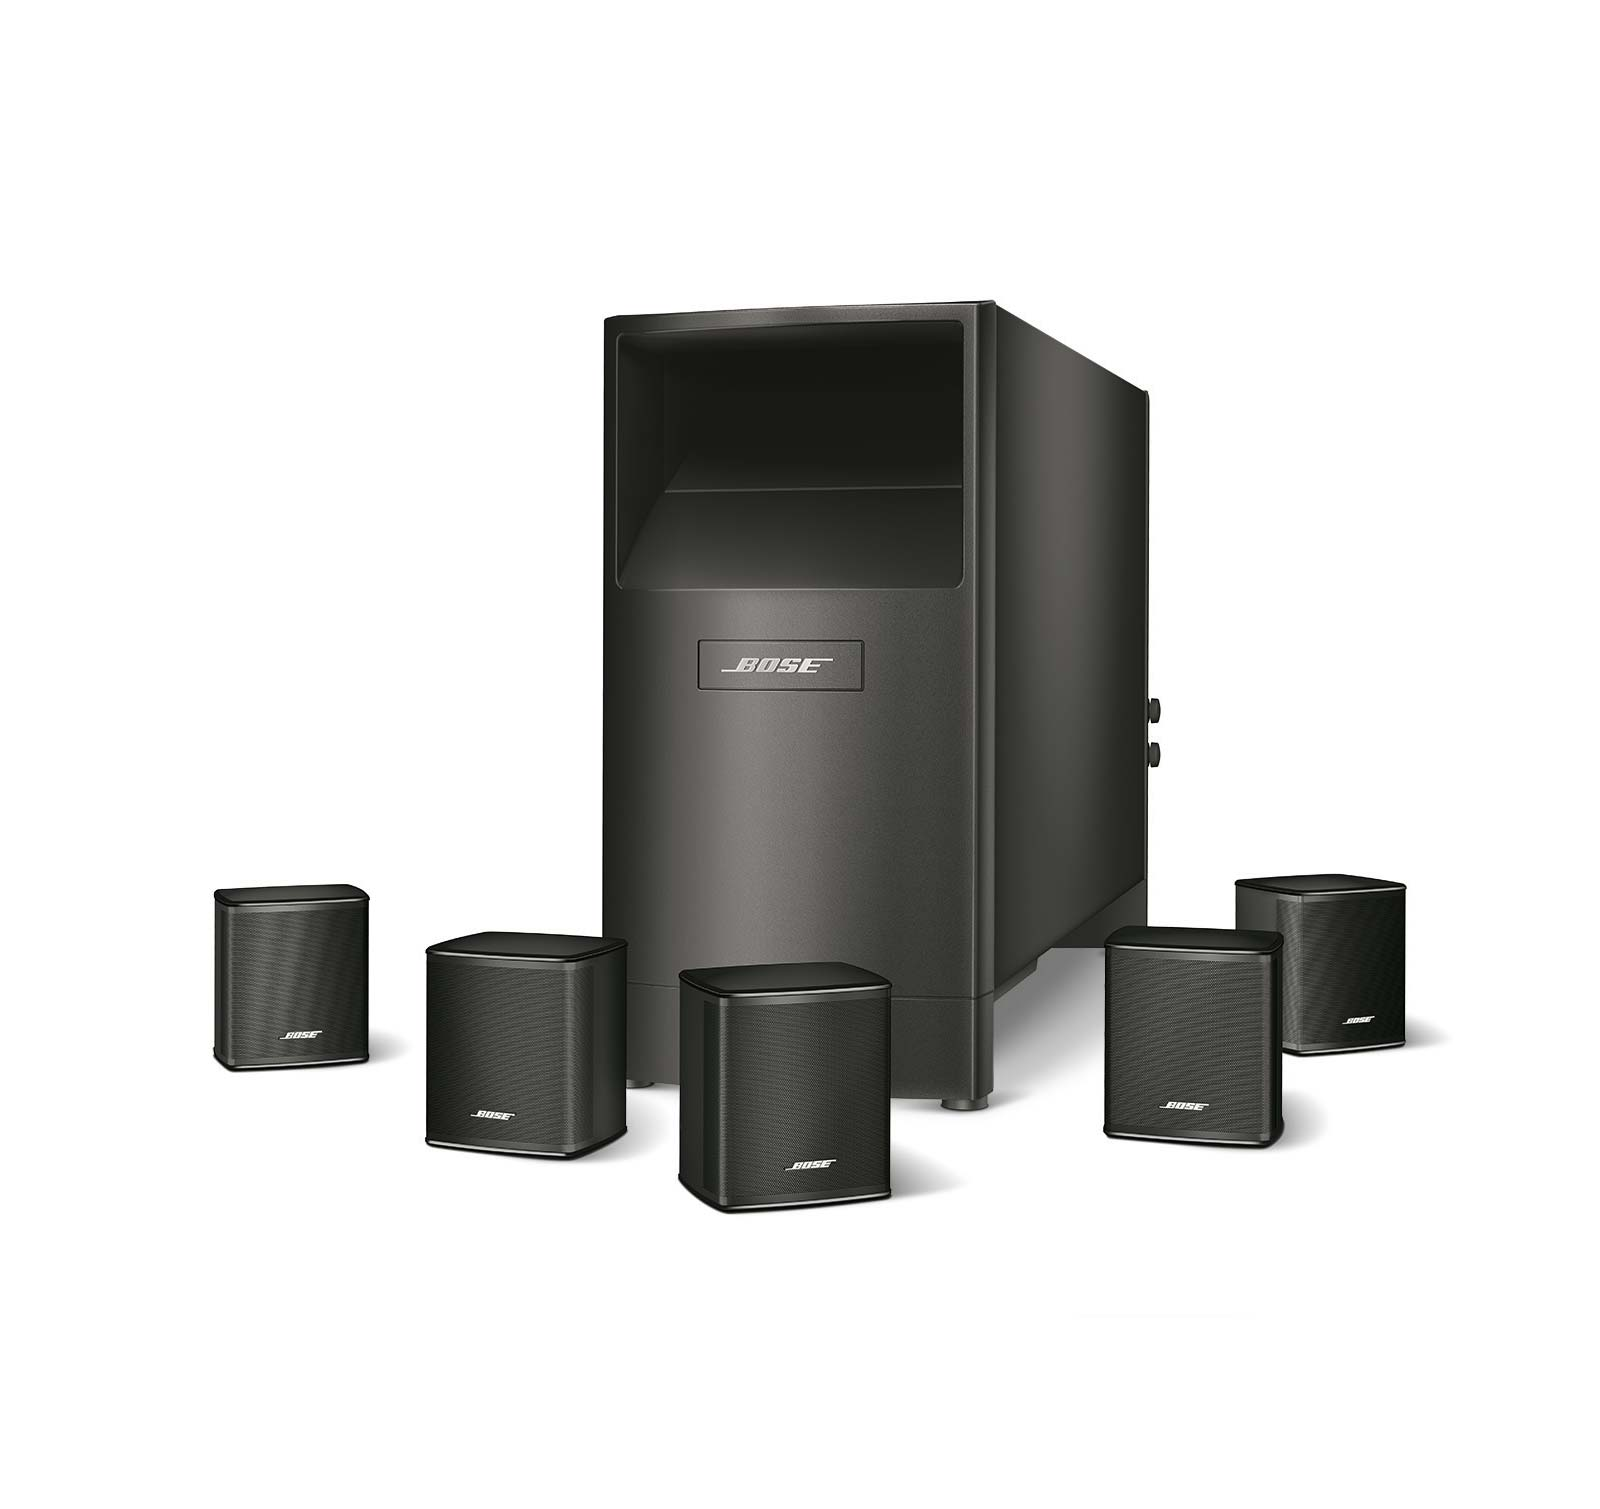 bose acoustimass 6 series v black home theater speaker system ebay. Black Bedroom Furniture Sets. Home Design Ideas